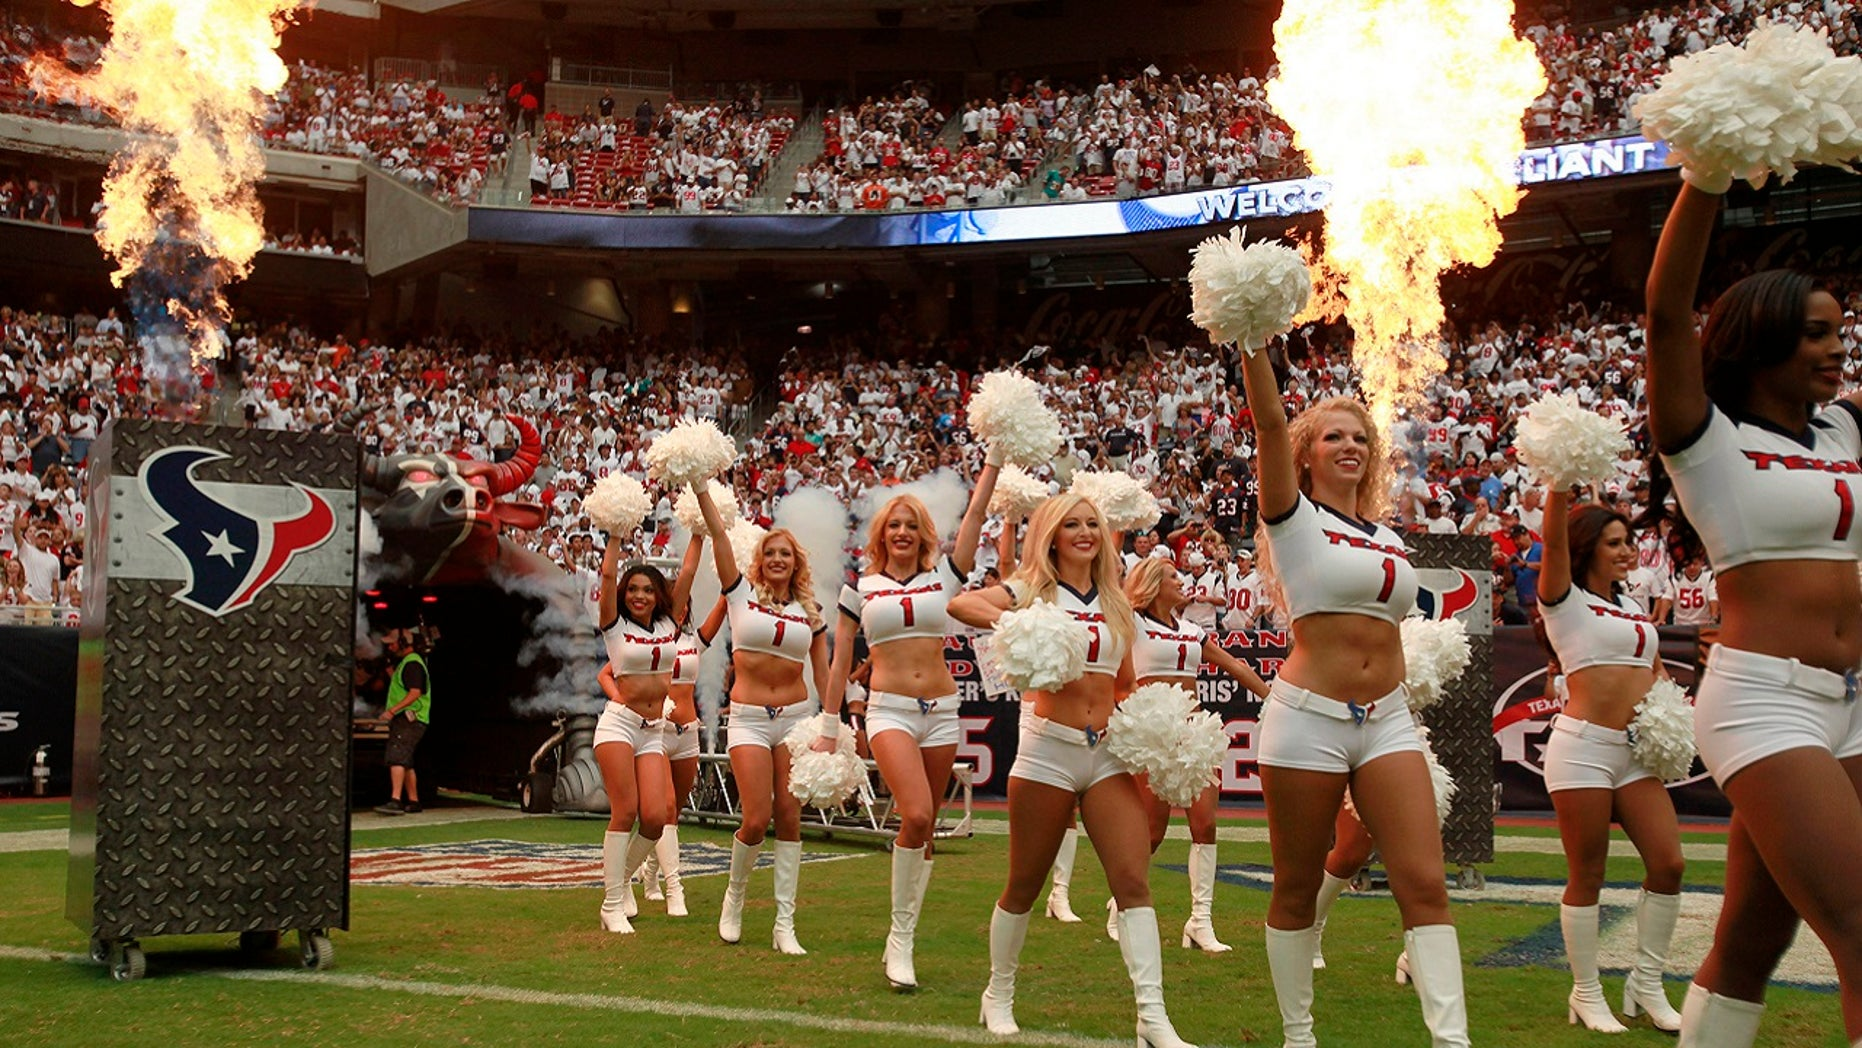 The Houston Texans cheerleaders enter the field surrounded by smoke and flame during the opening ceremonies of the season opening NFL football game against the Miami Dolphins in Houston, Sept. 9, 2012.